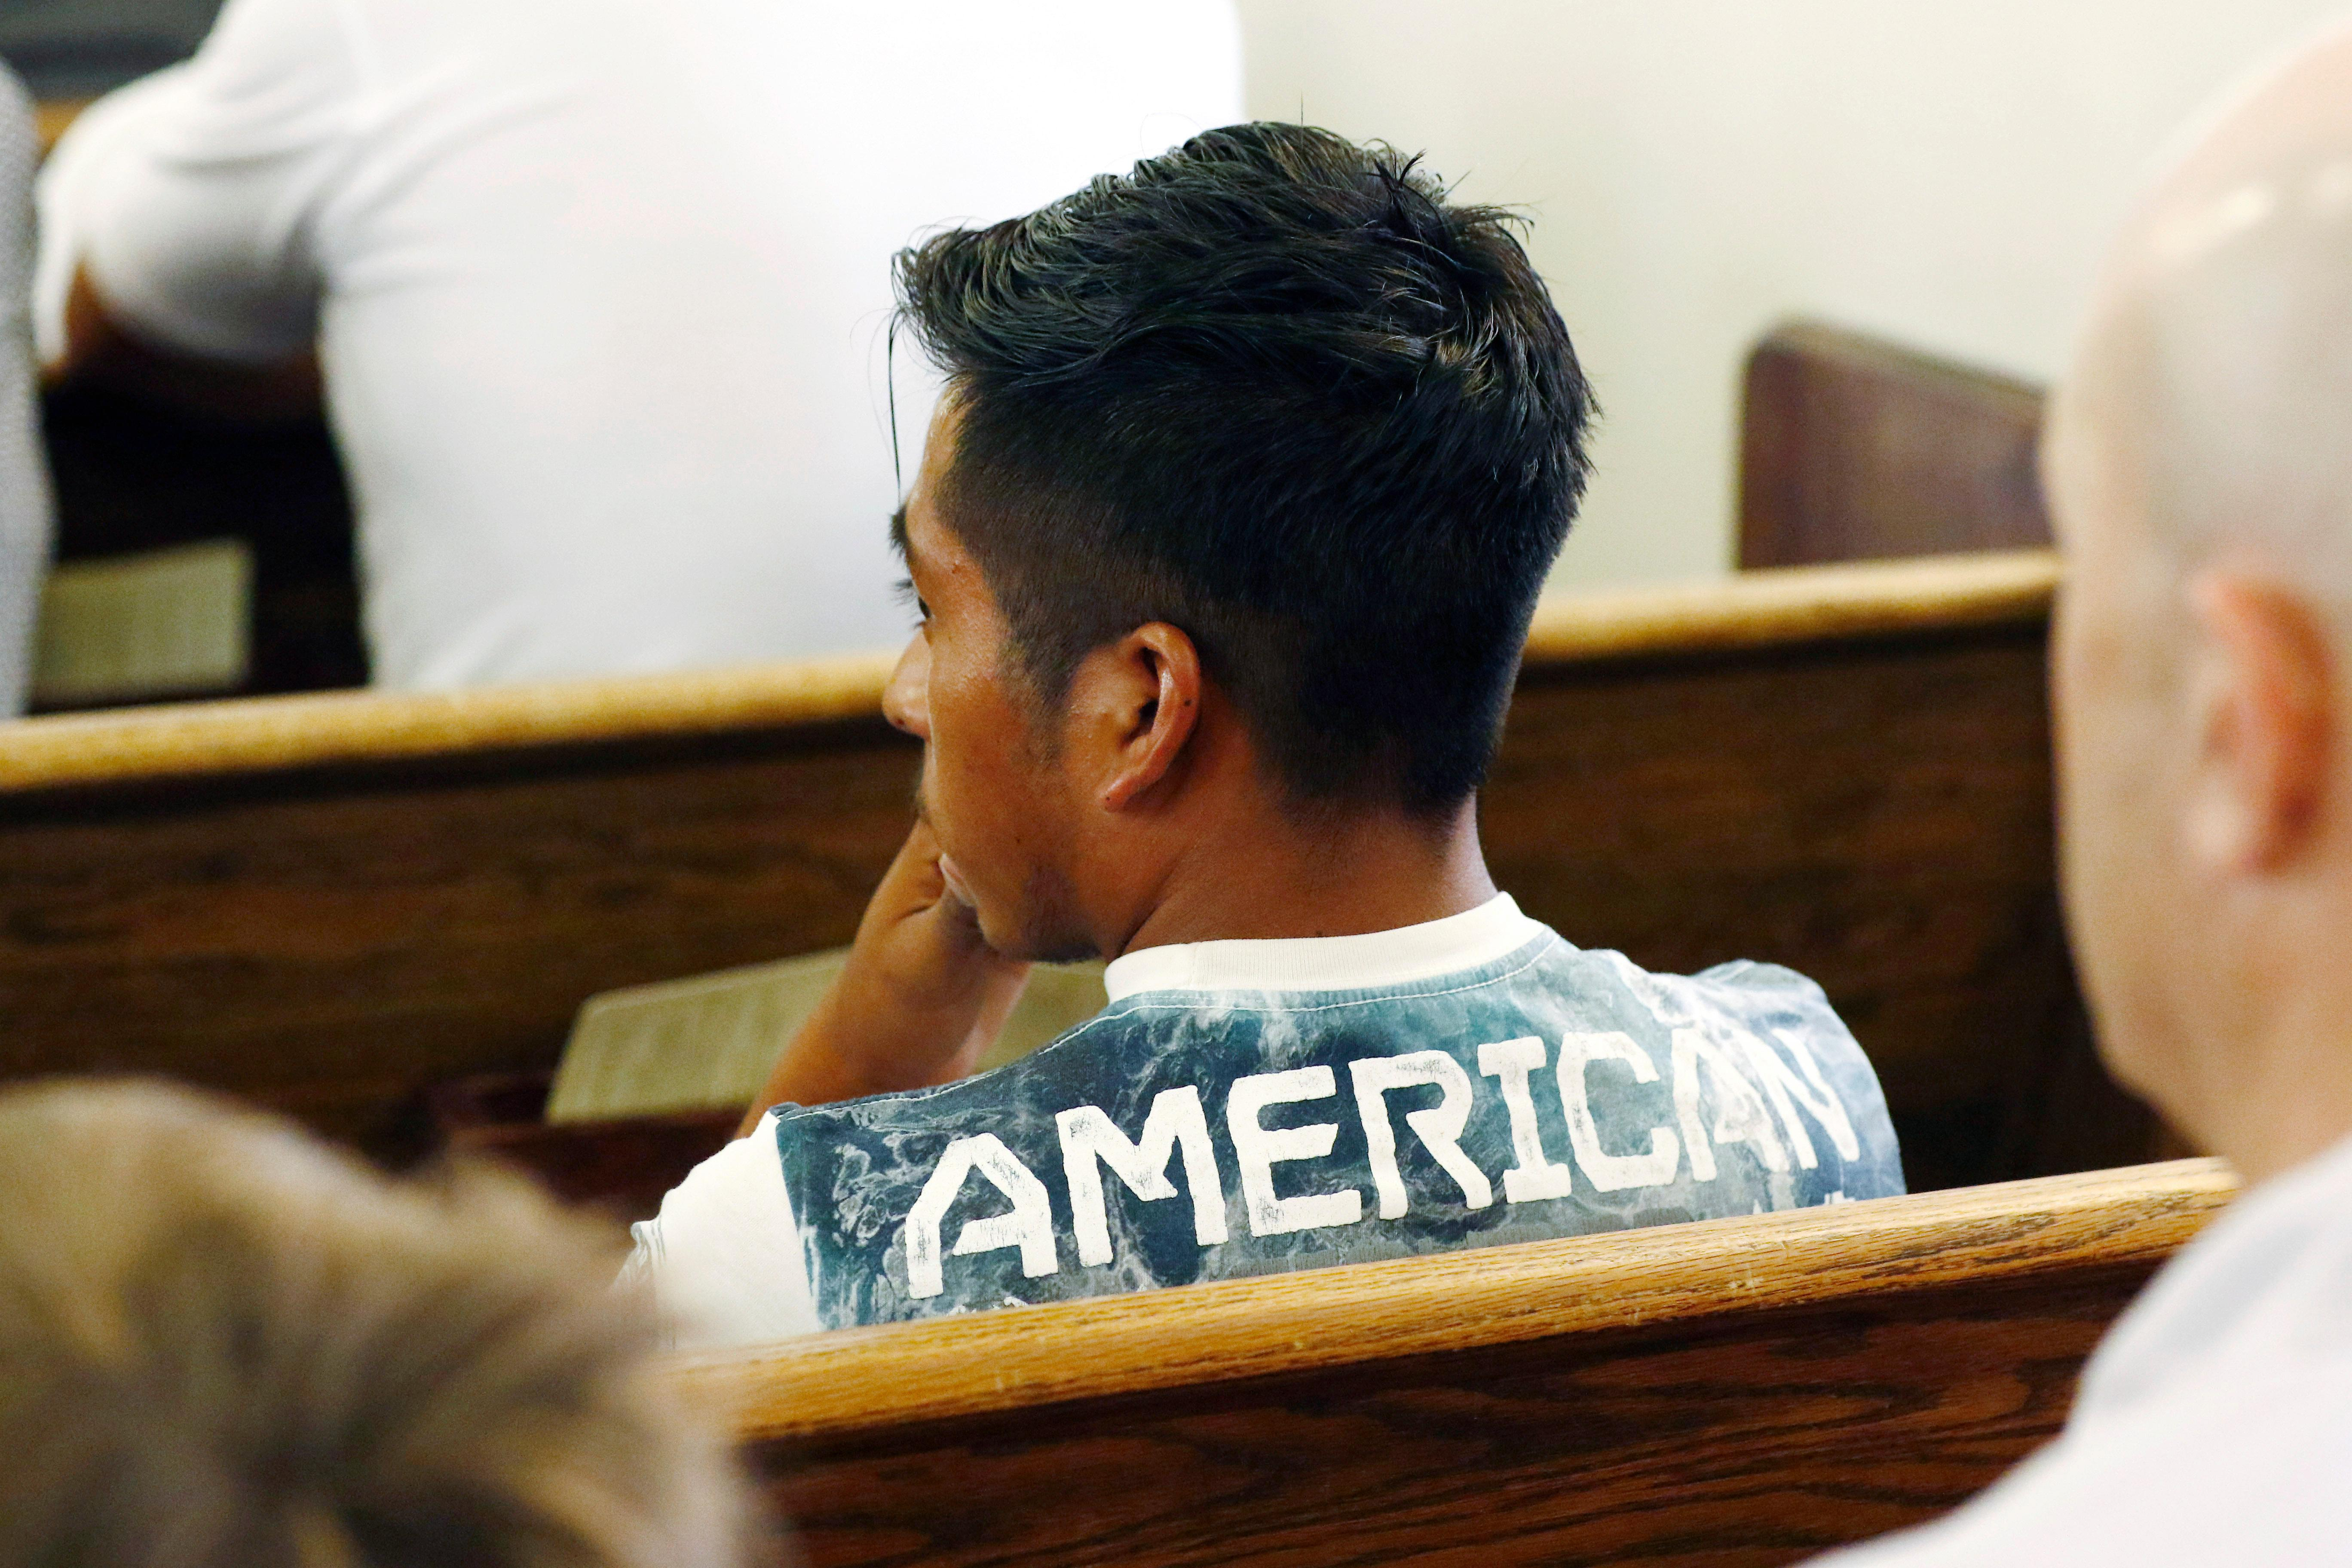 America today exists in a state of anxiety over the threat of immigration raids